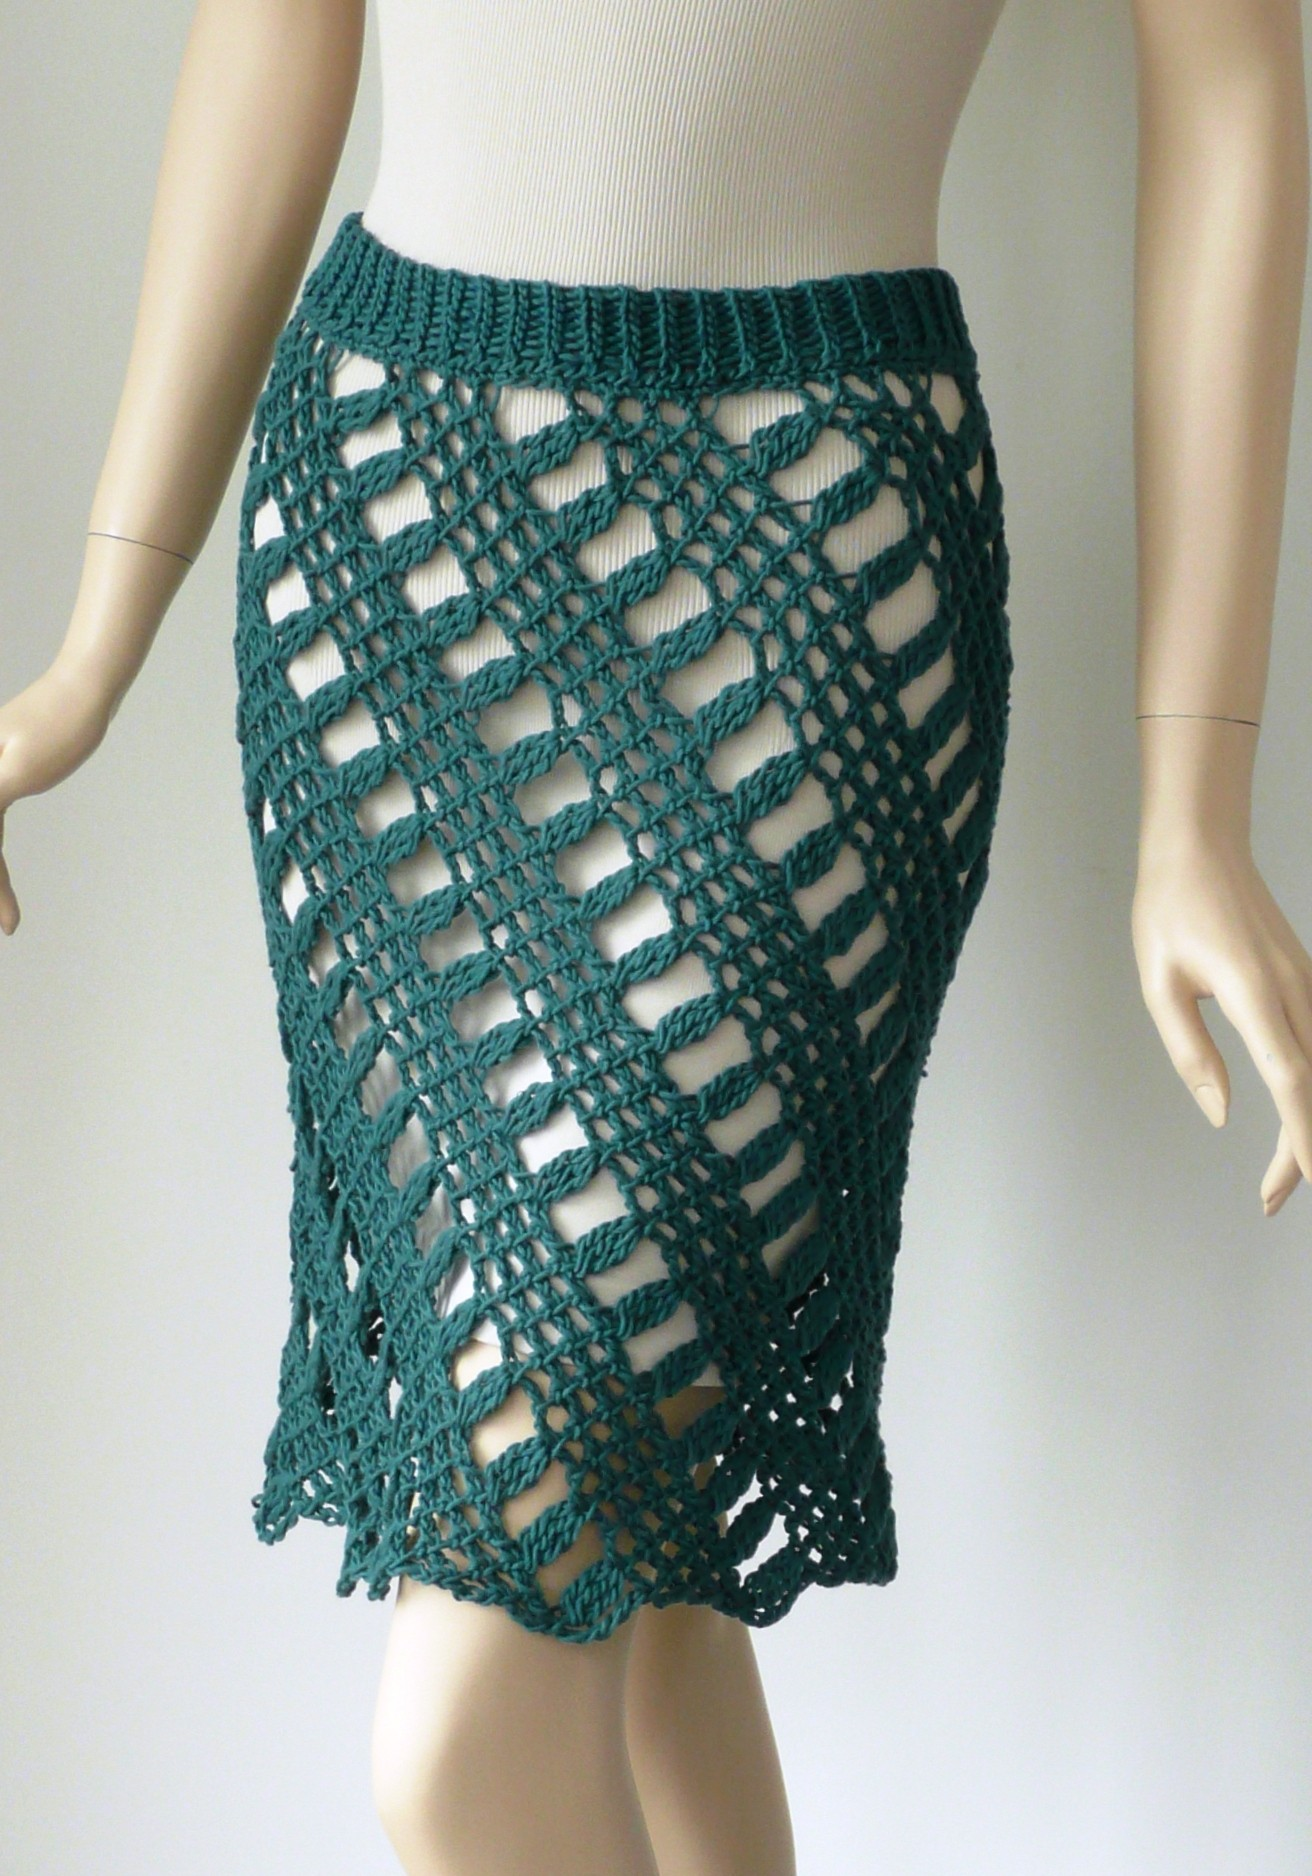 ... 2013 at 1312 ? 1876 in The Crocheted Skirt: Fashion Fact or Fantasy